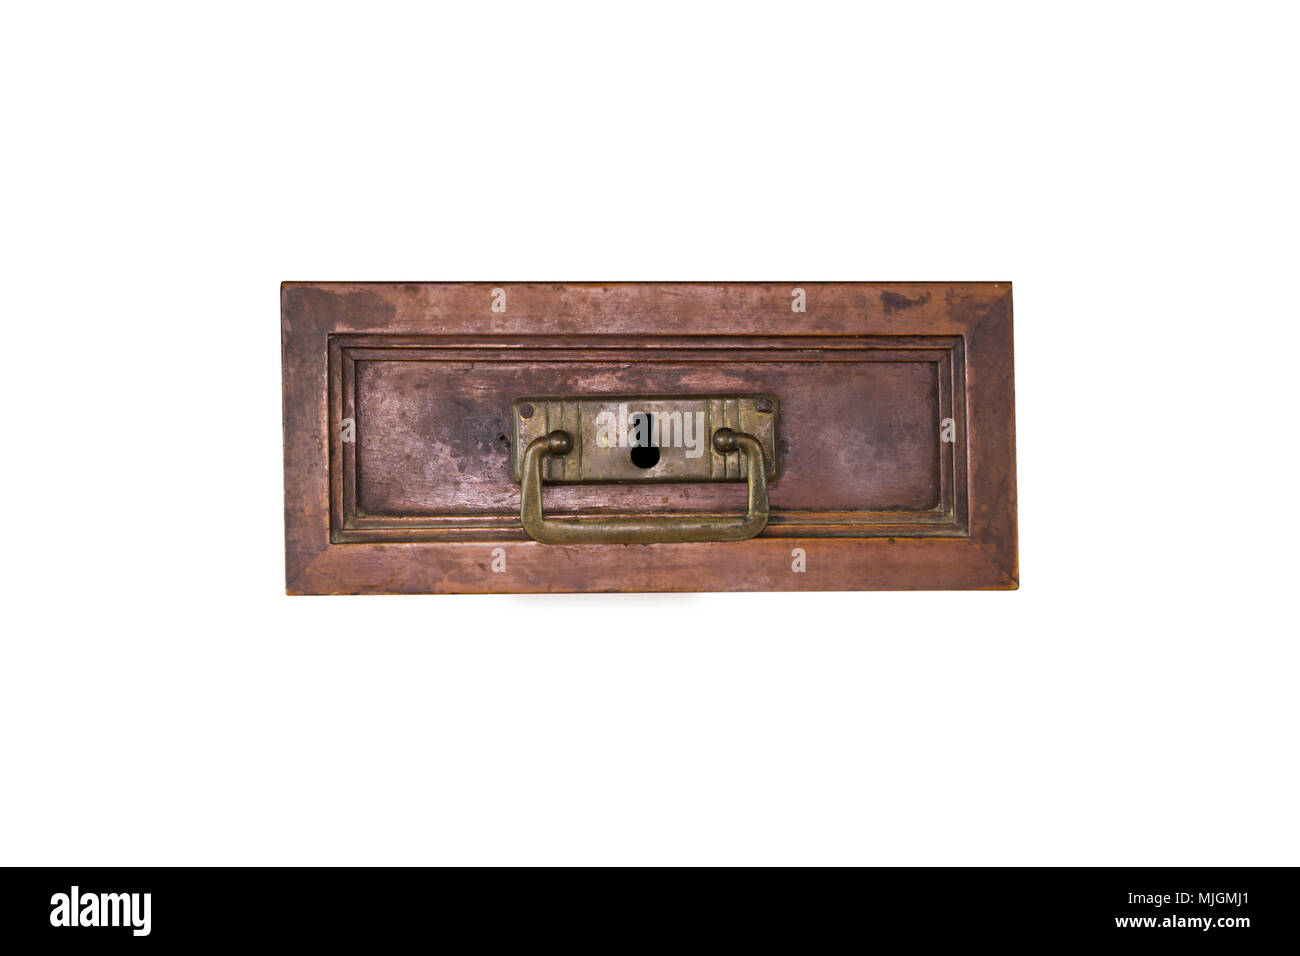 white drawer front. Vintage Wooden Desk Drawer Front View Isolated On White Background - Stock Image 5